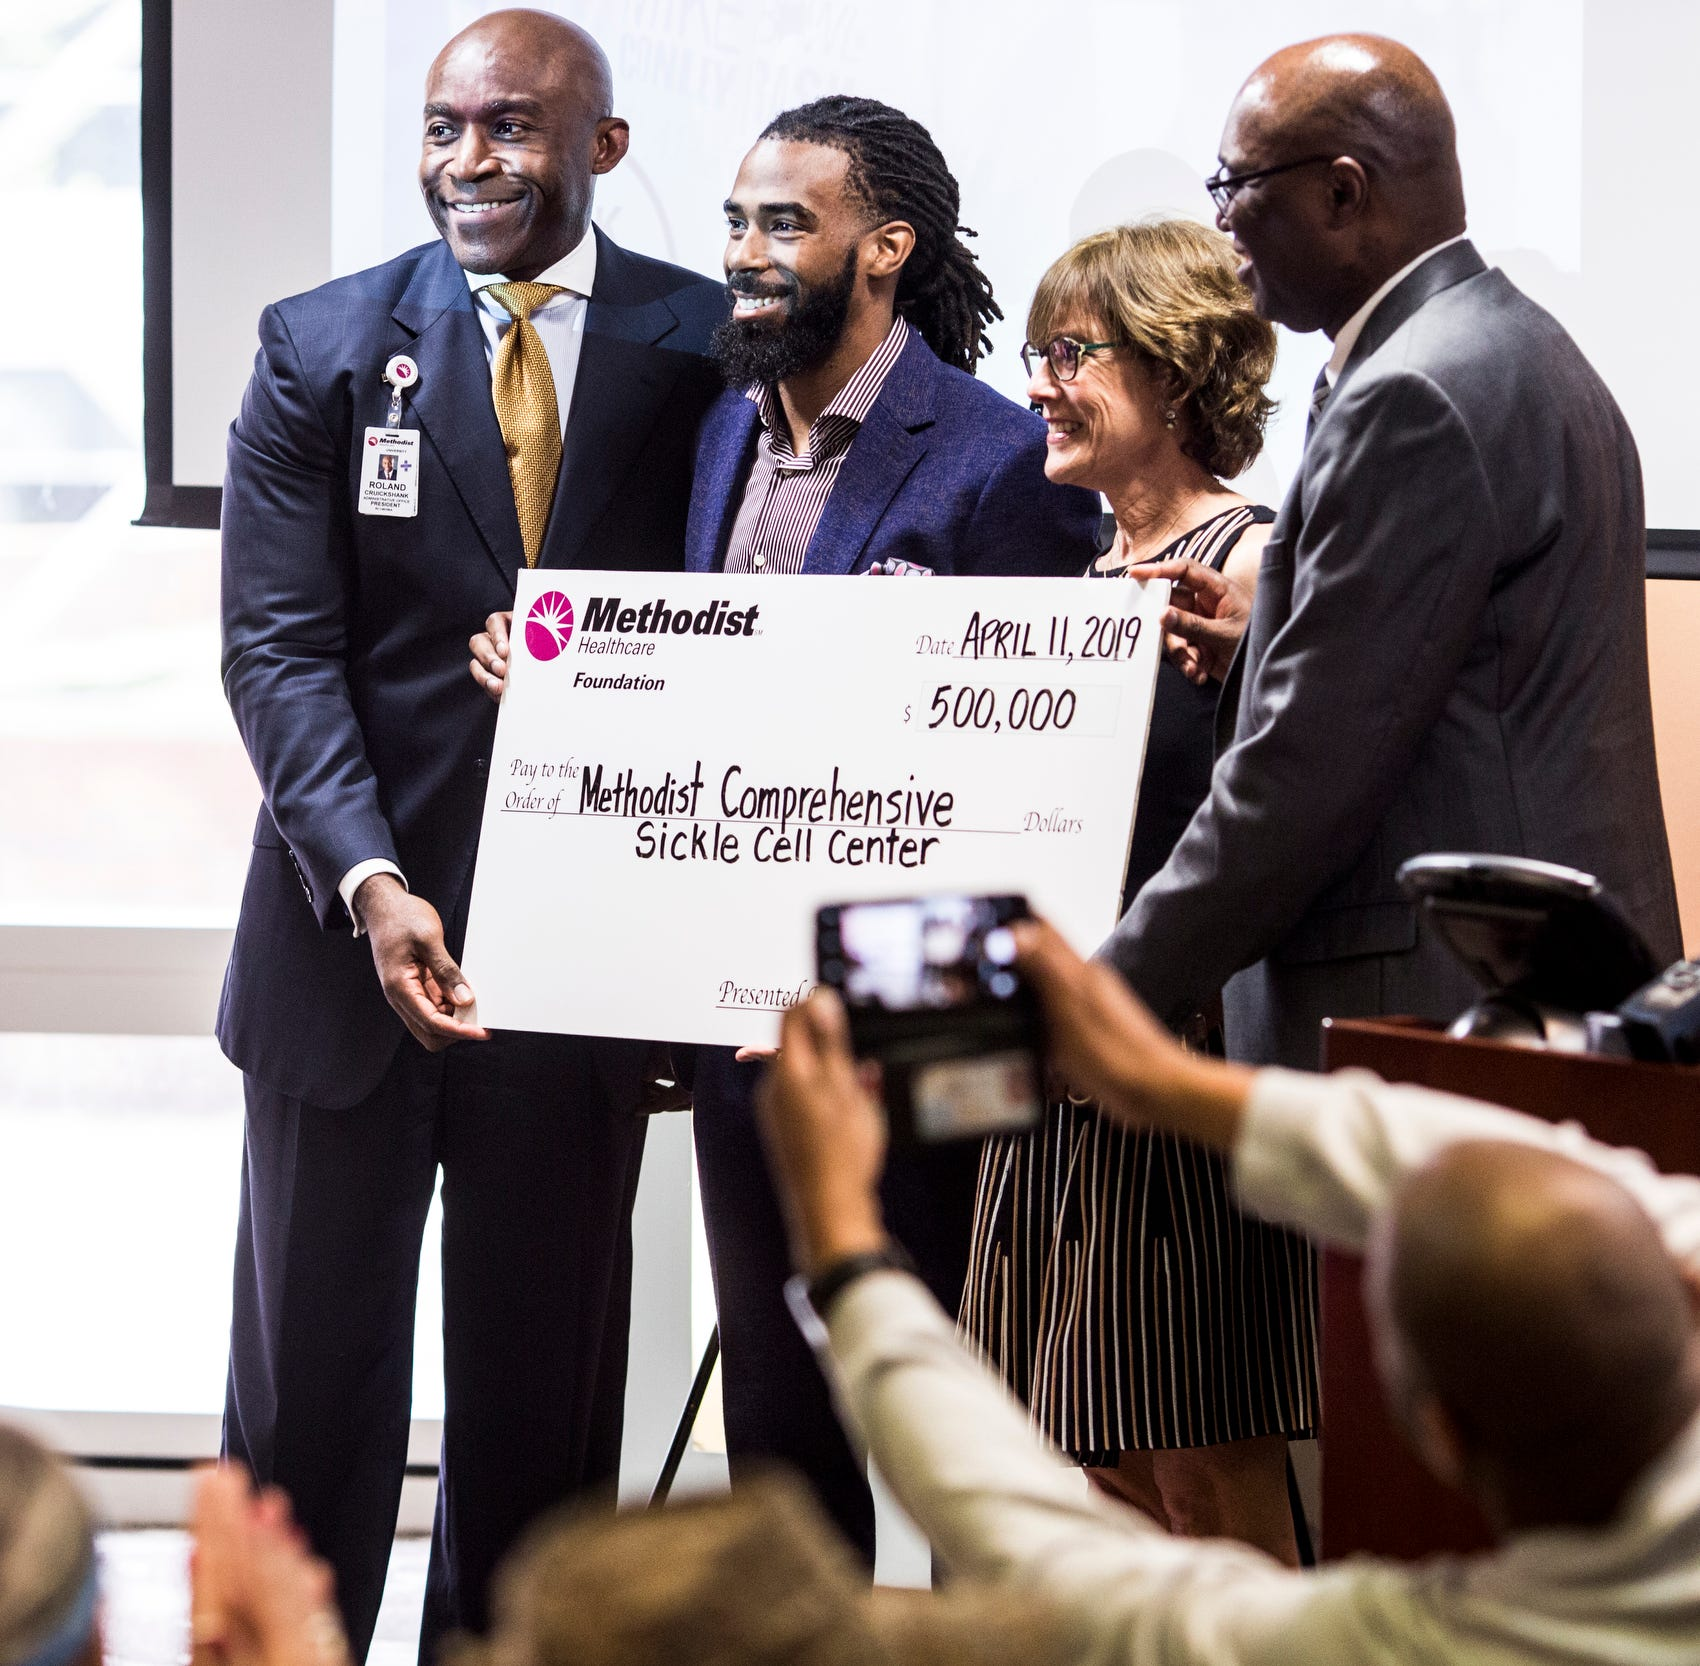 Memphis Grizzlies' Mike Conley donates $500K to Methodist sickle cell center